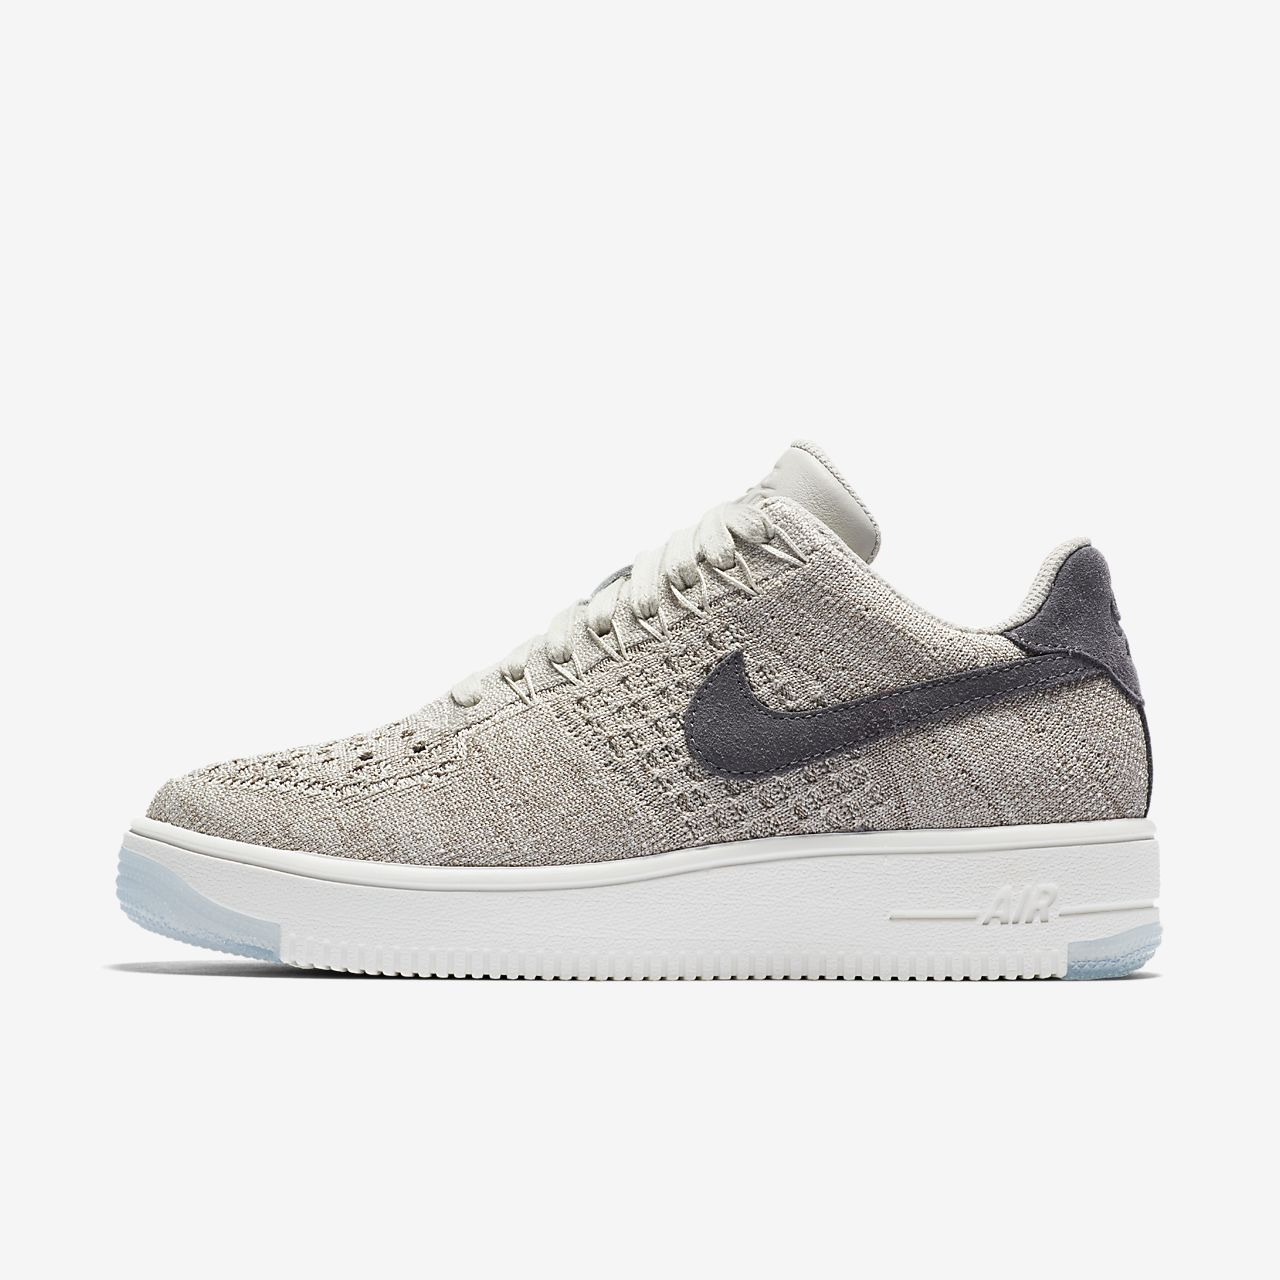 fa2b906c1 Buy nike air force 1 flyknit womens > up to 31% Discounts